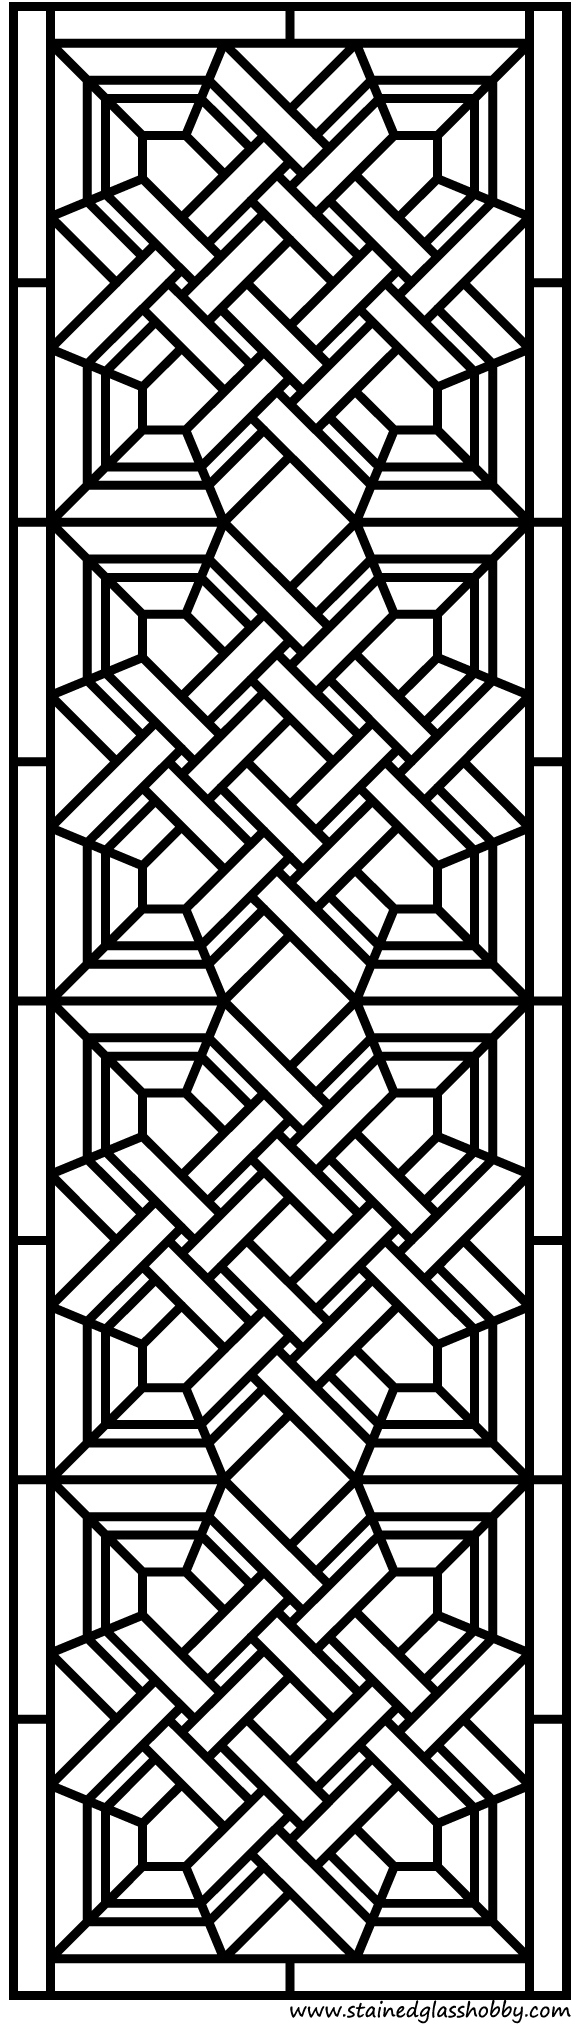 Stained glass door panel design